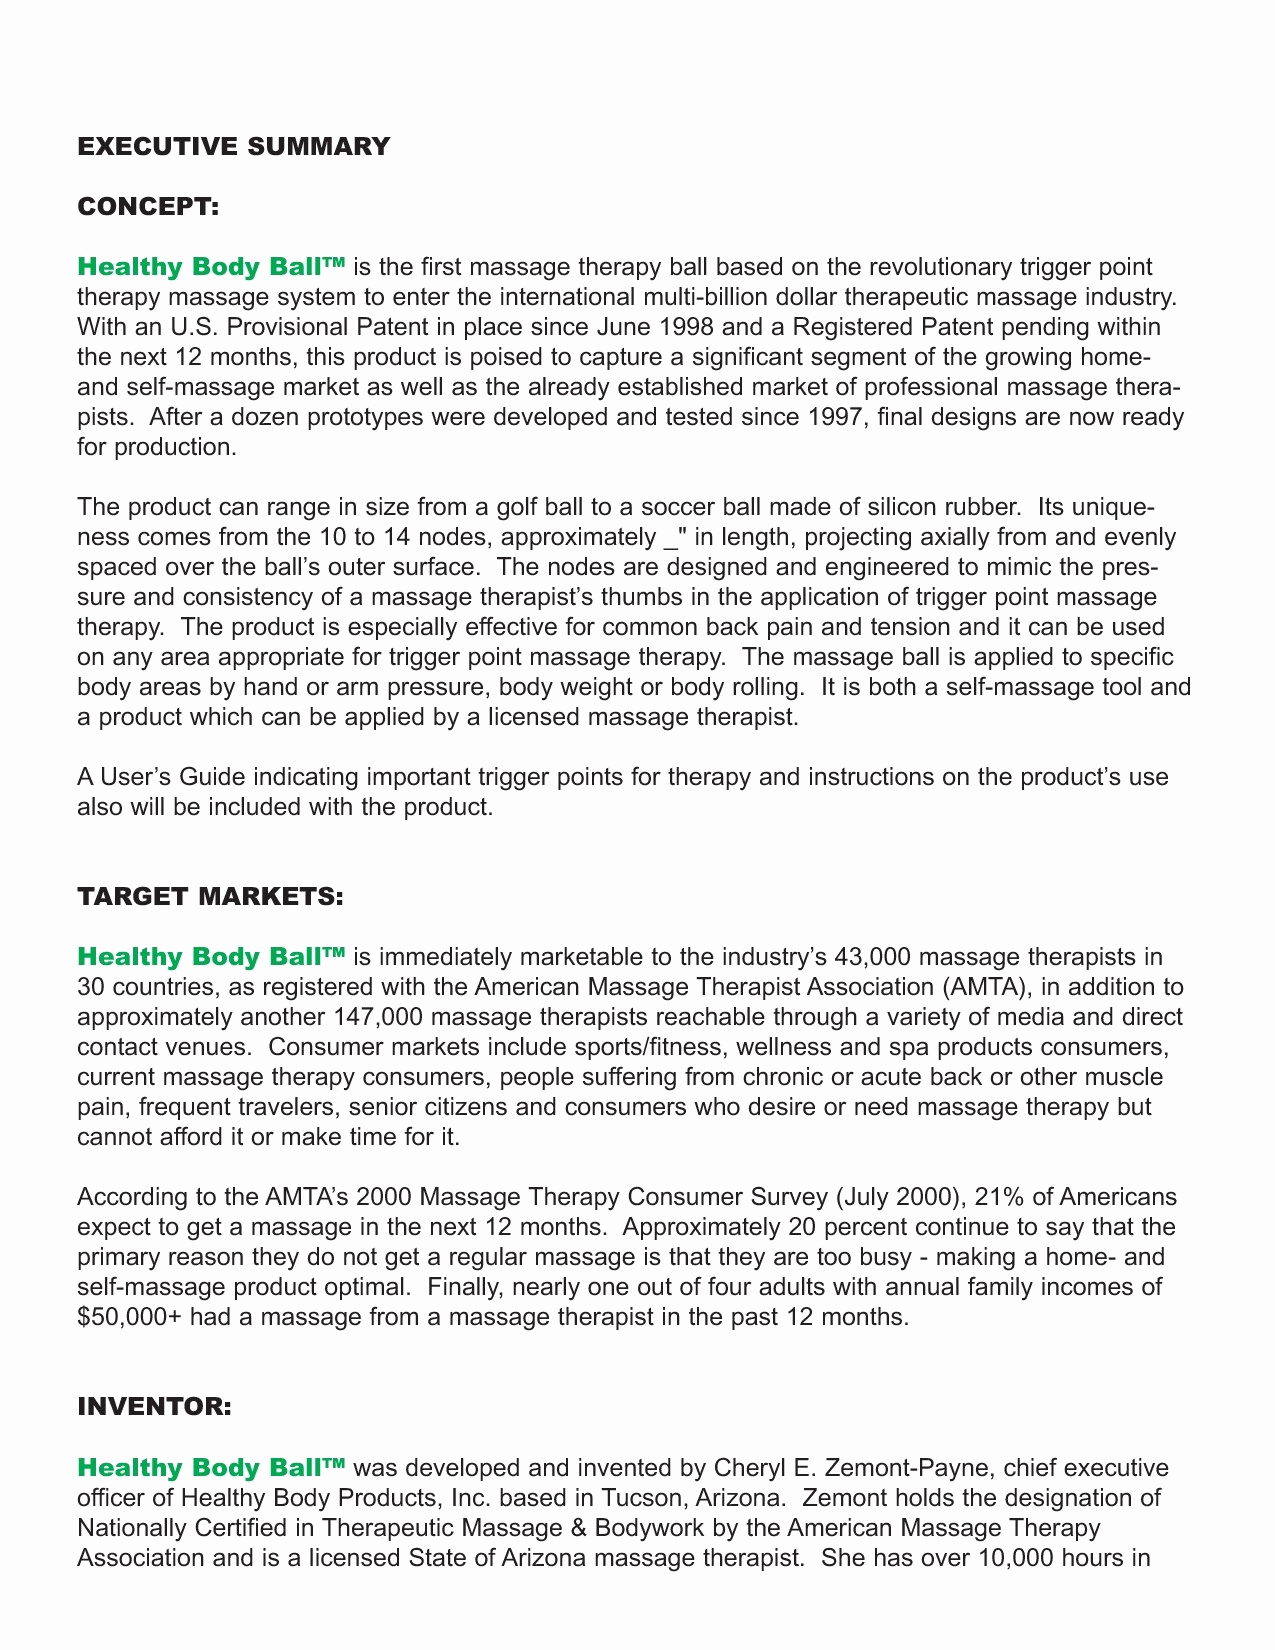 Executive Summary Example Business Plan New Business Plan Outline Sample Executive Summary